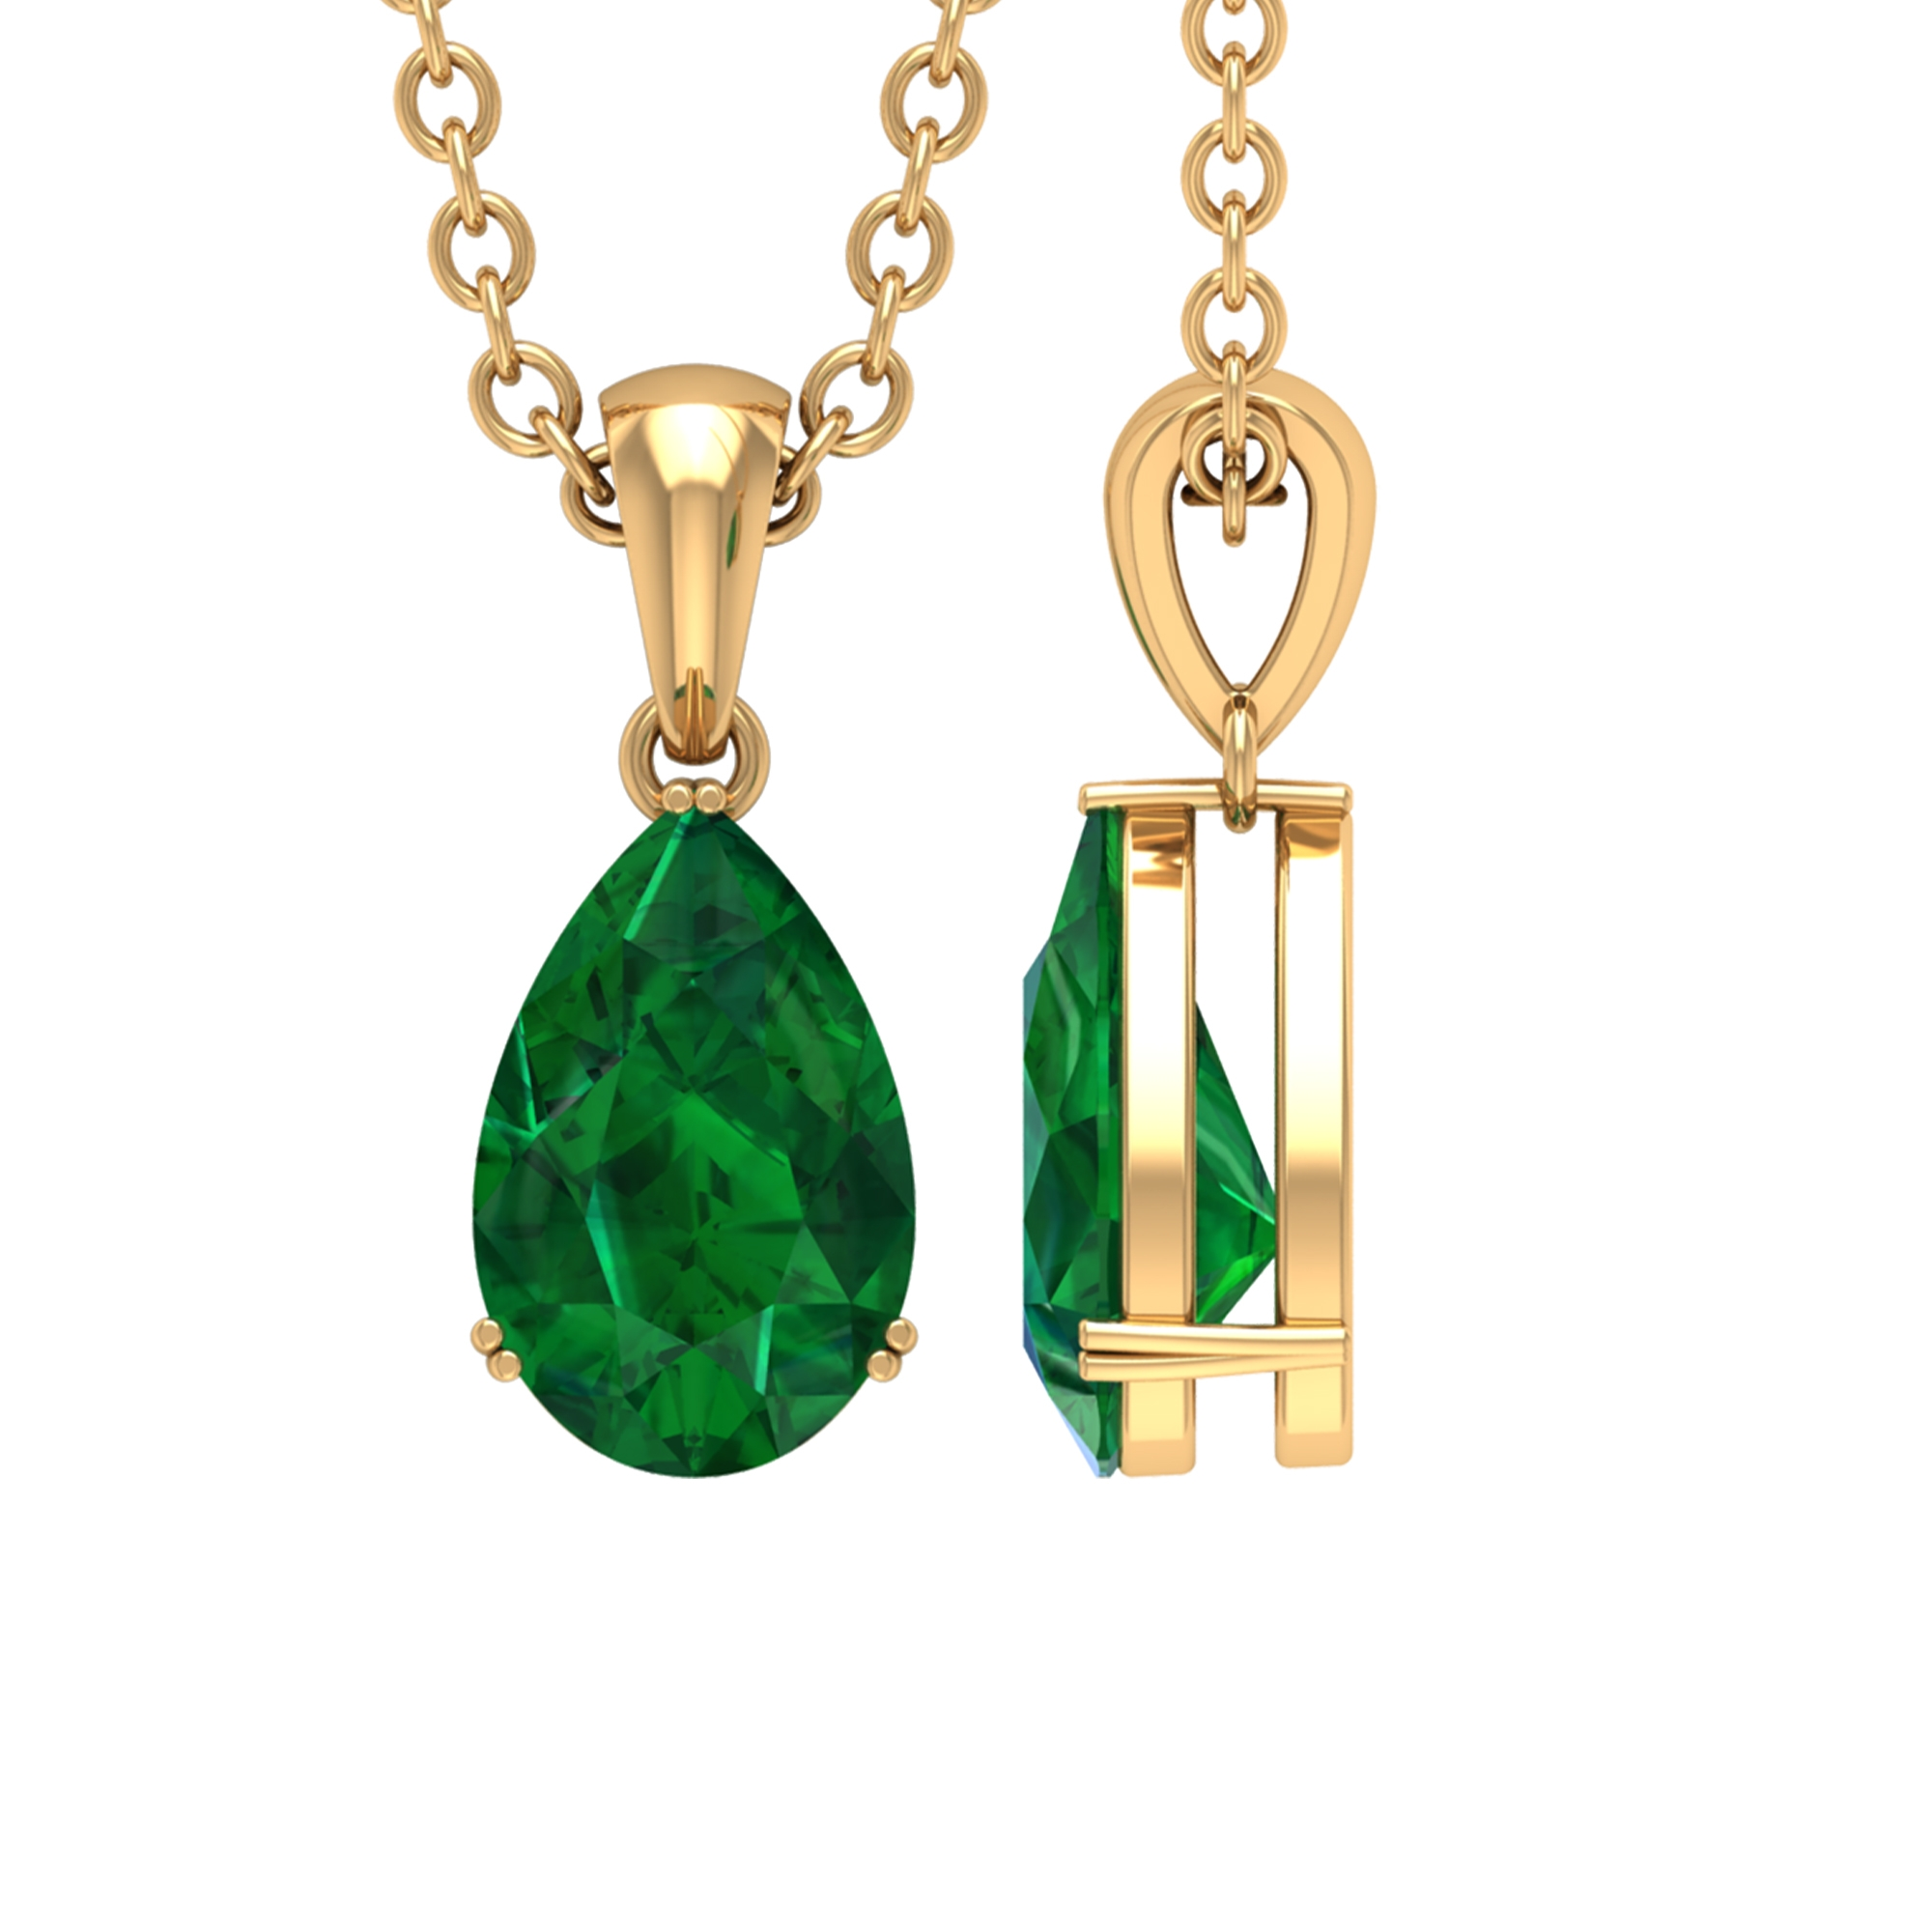 4.5X7 MM Teardrop Emerald Solitaire Pendant in Double Prong Setting for Women